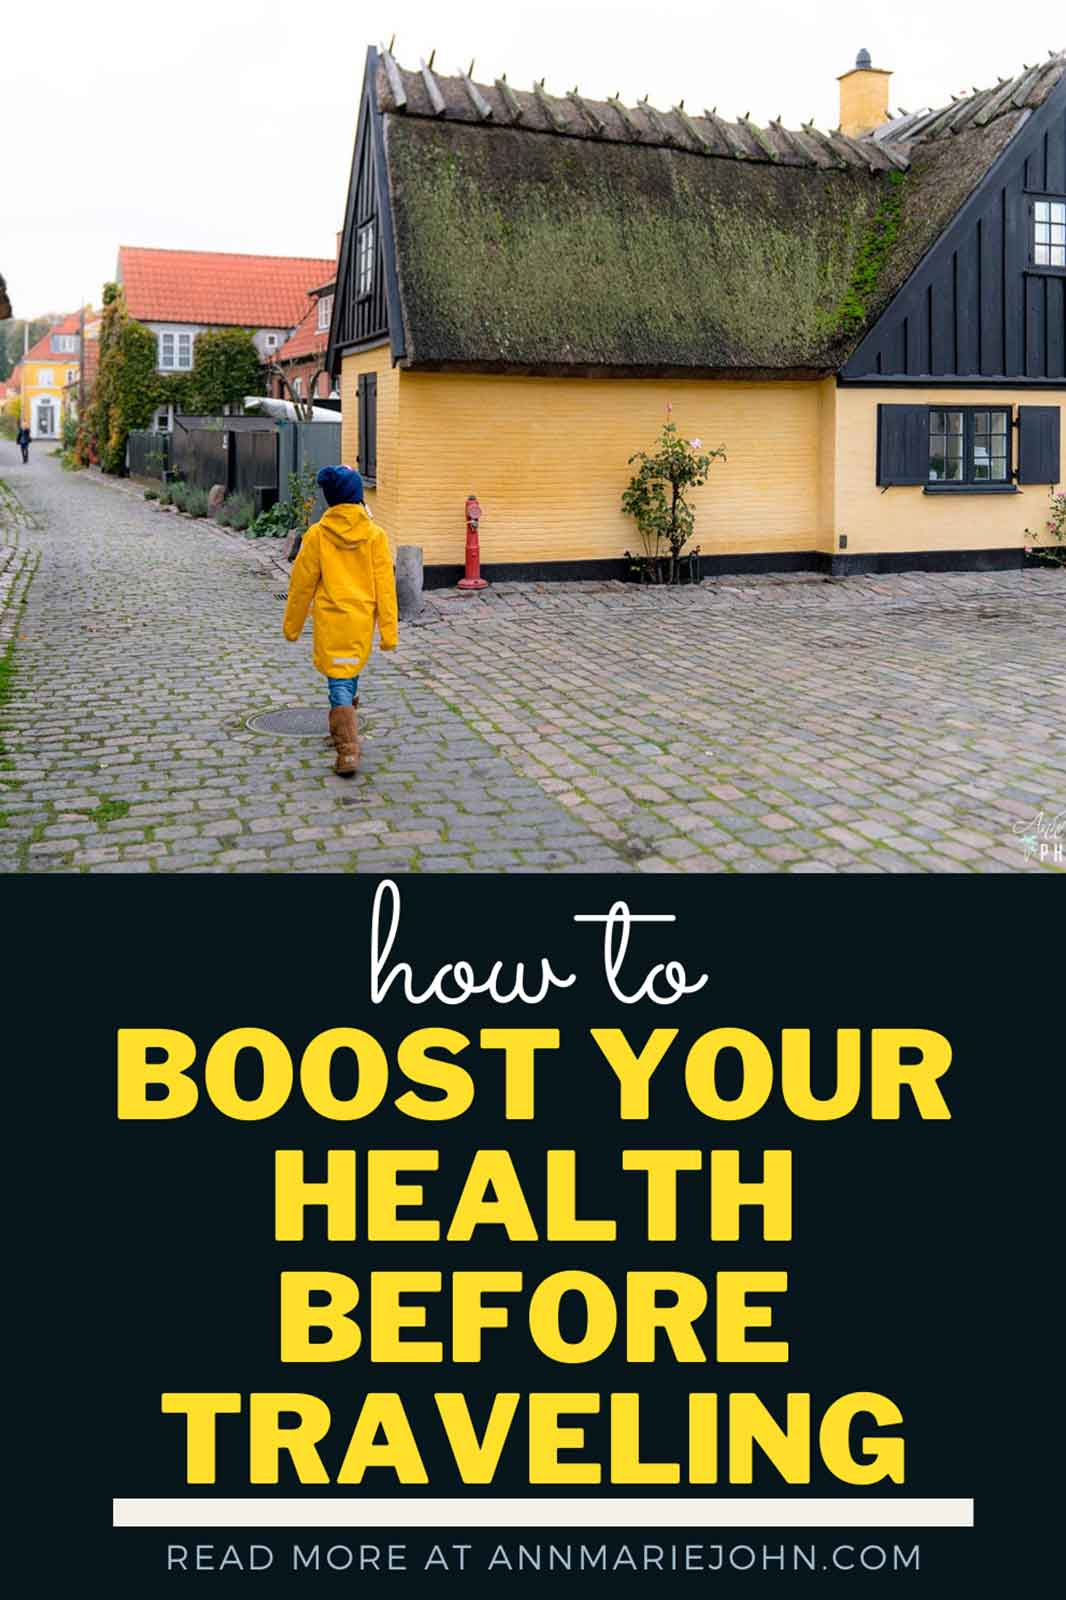 How to Boost Your Health Before Traveling